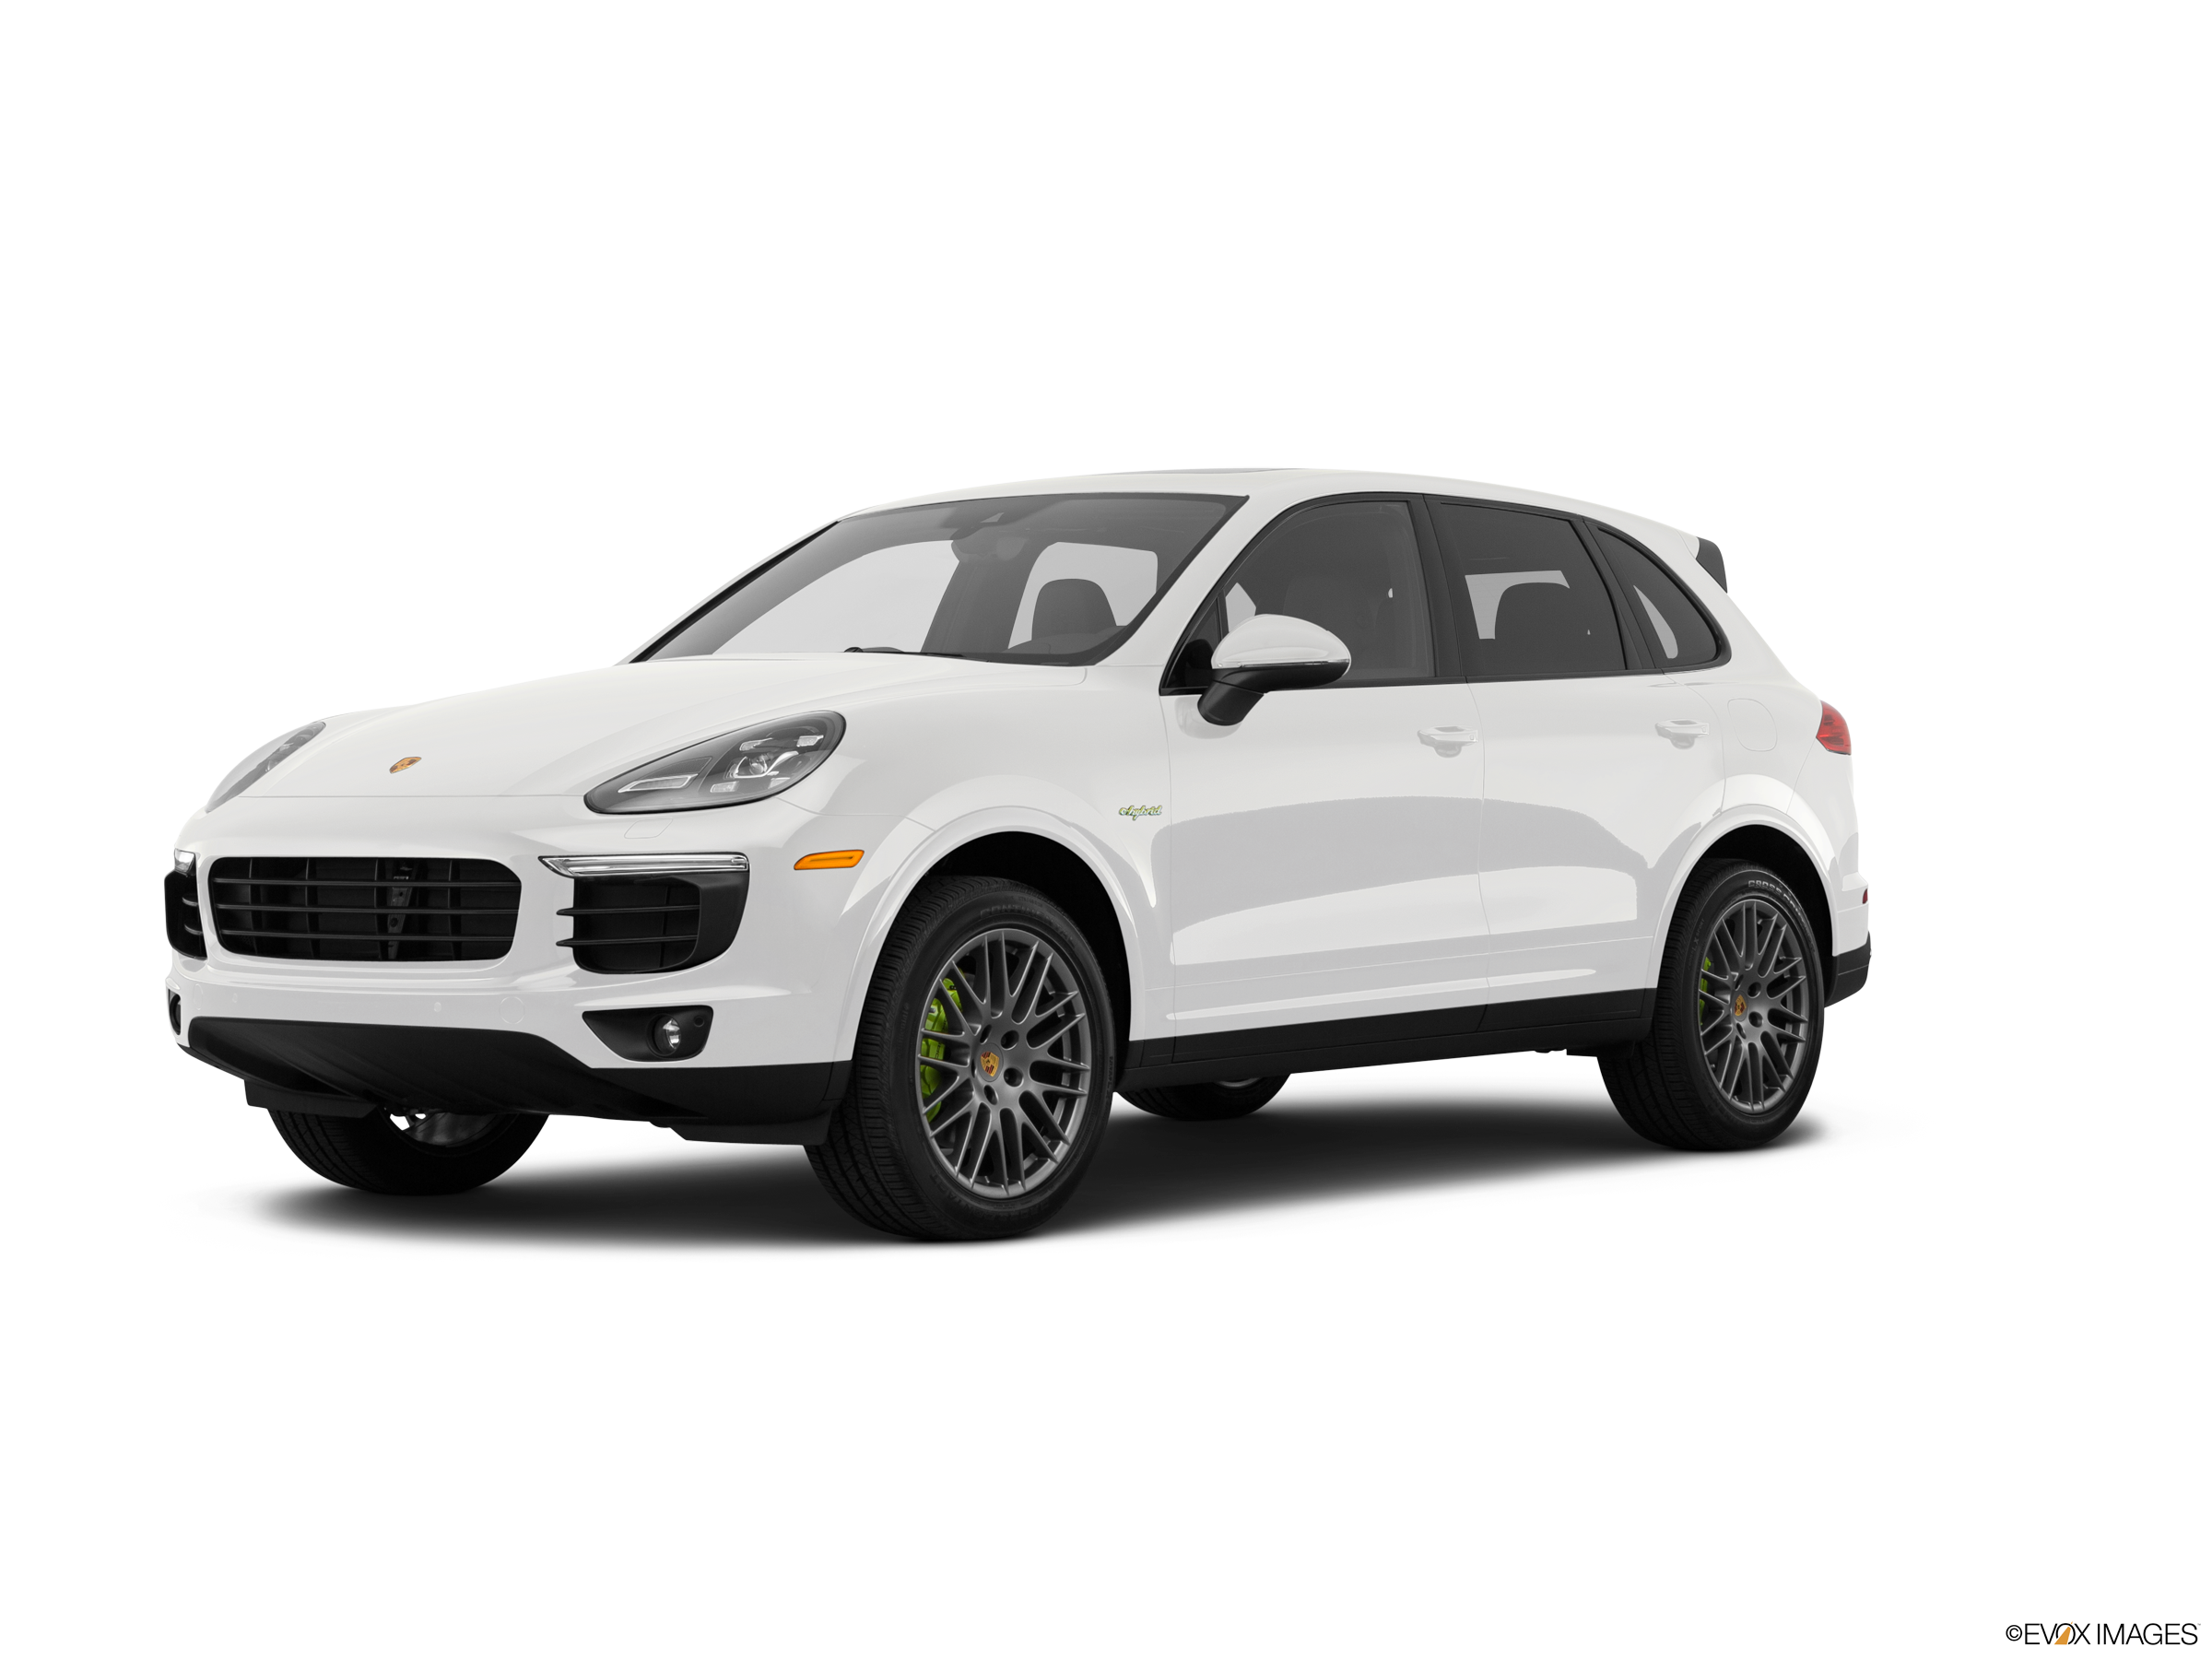 Highest Horsepower Hybrids of 2017 - 2017 Porsche Cayenne